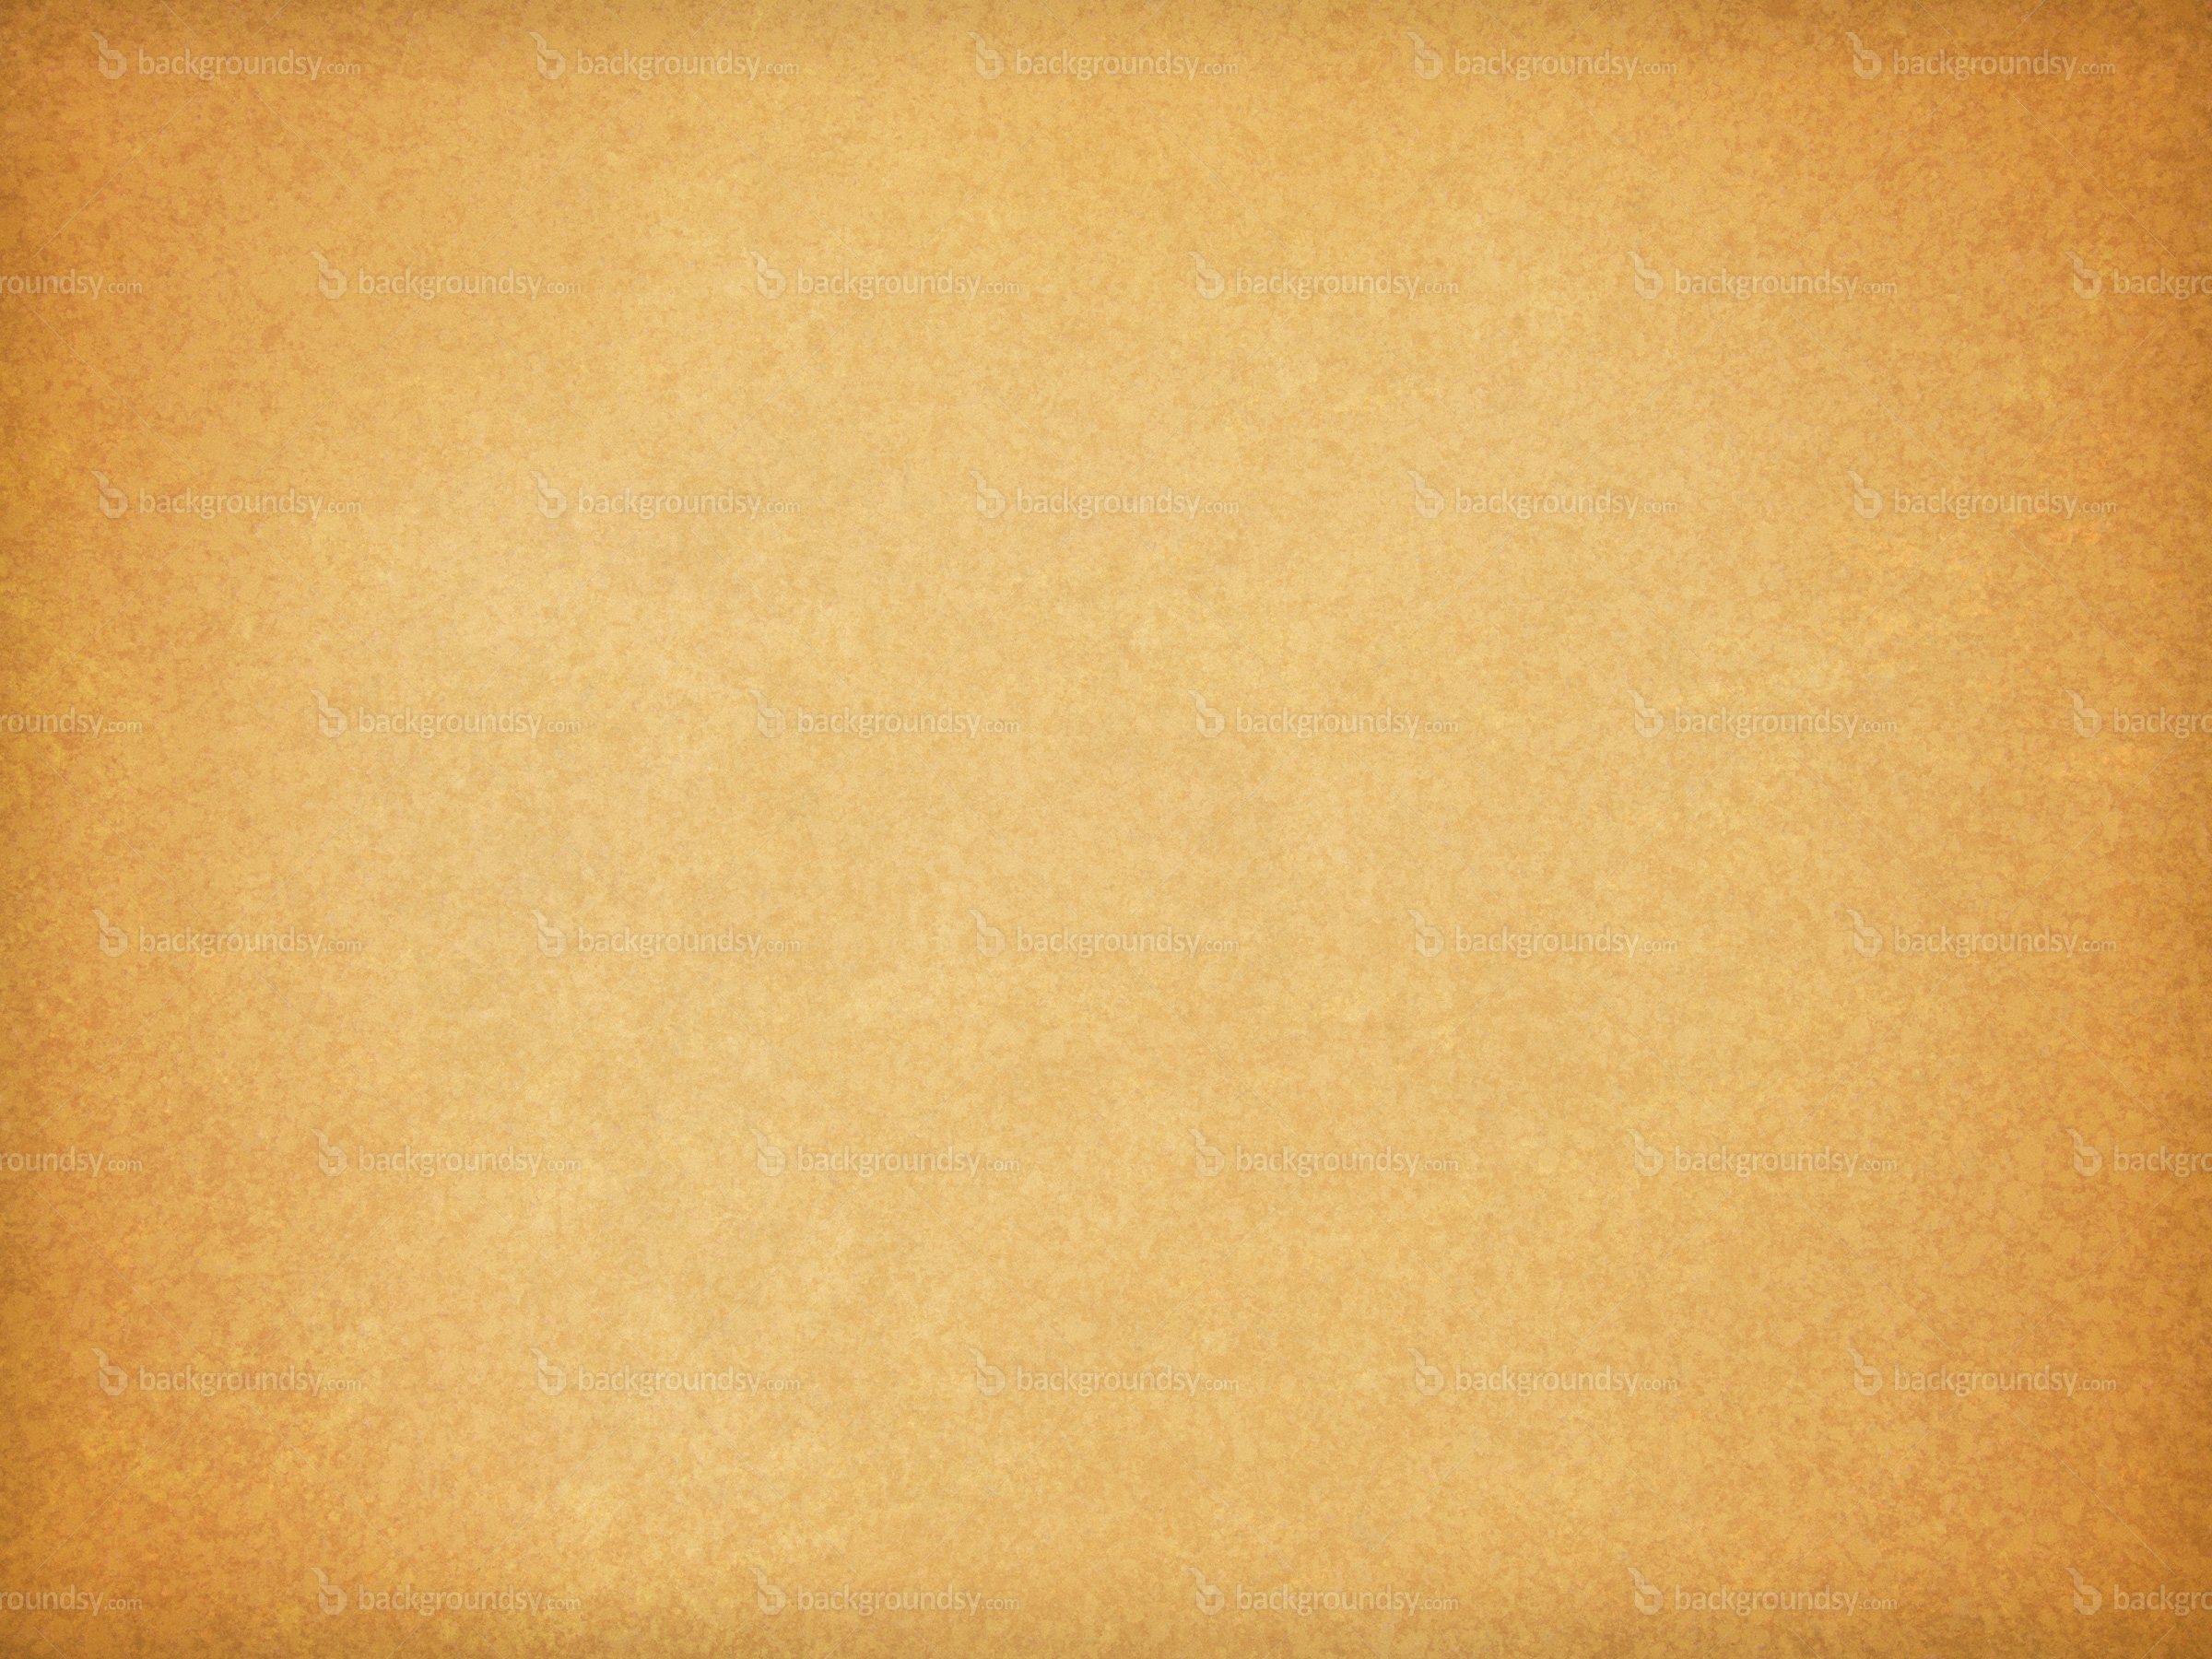 Old paper texture | Backgroundsy.com